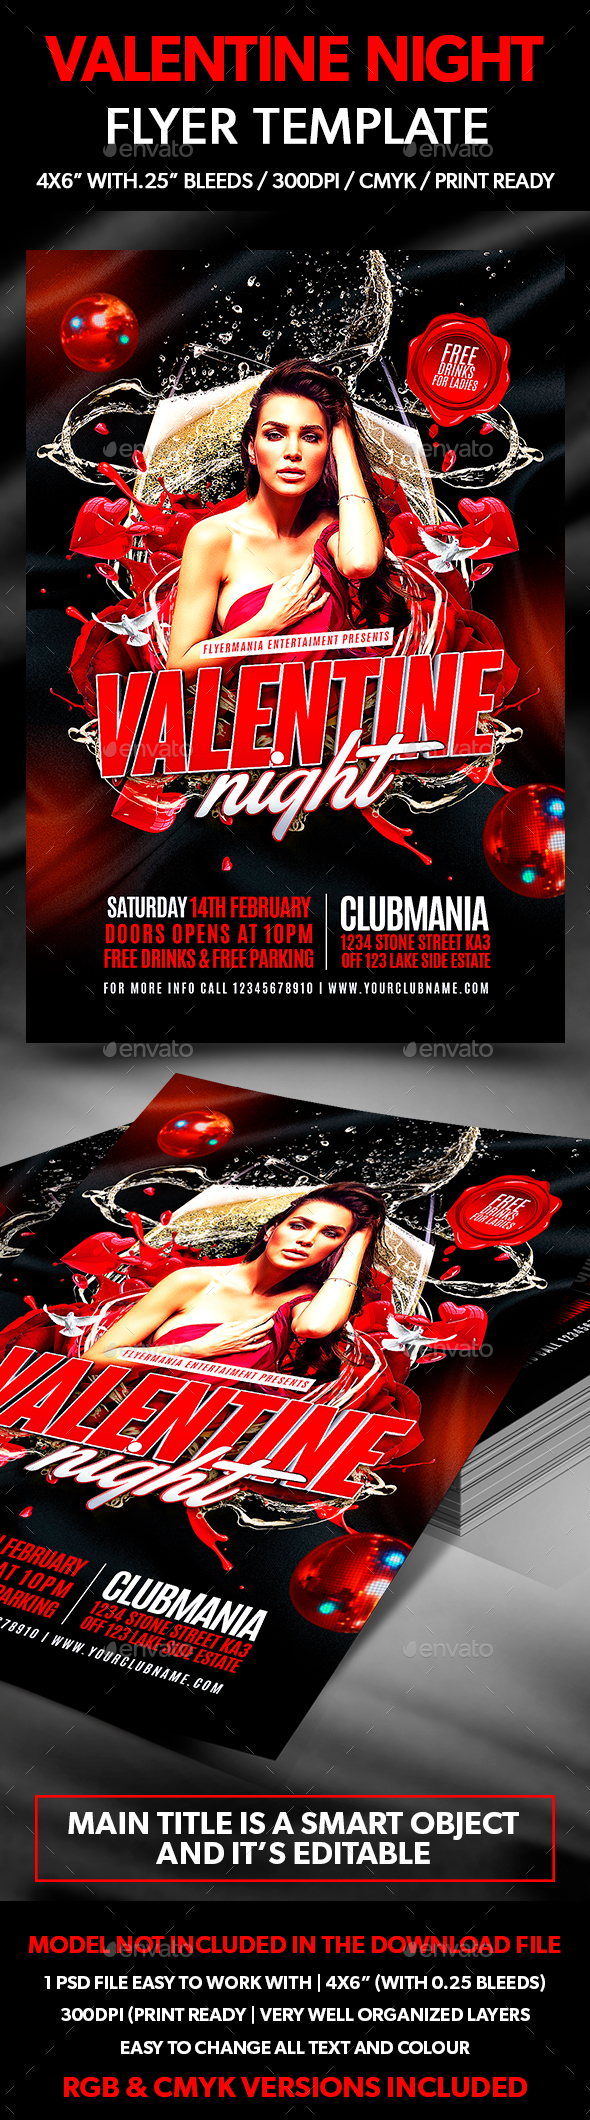 Valentine Night Flyer Template - Flyers Print Templates